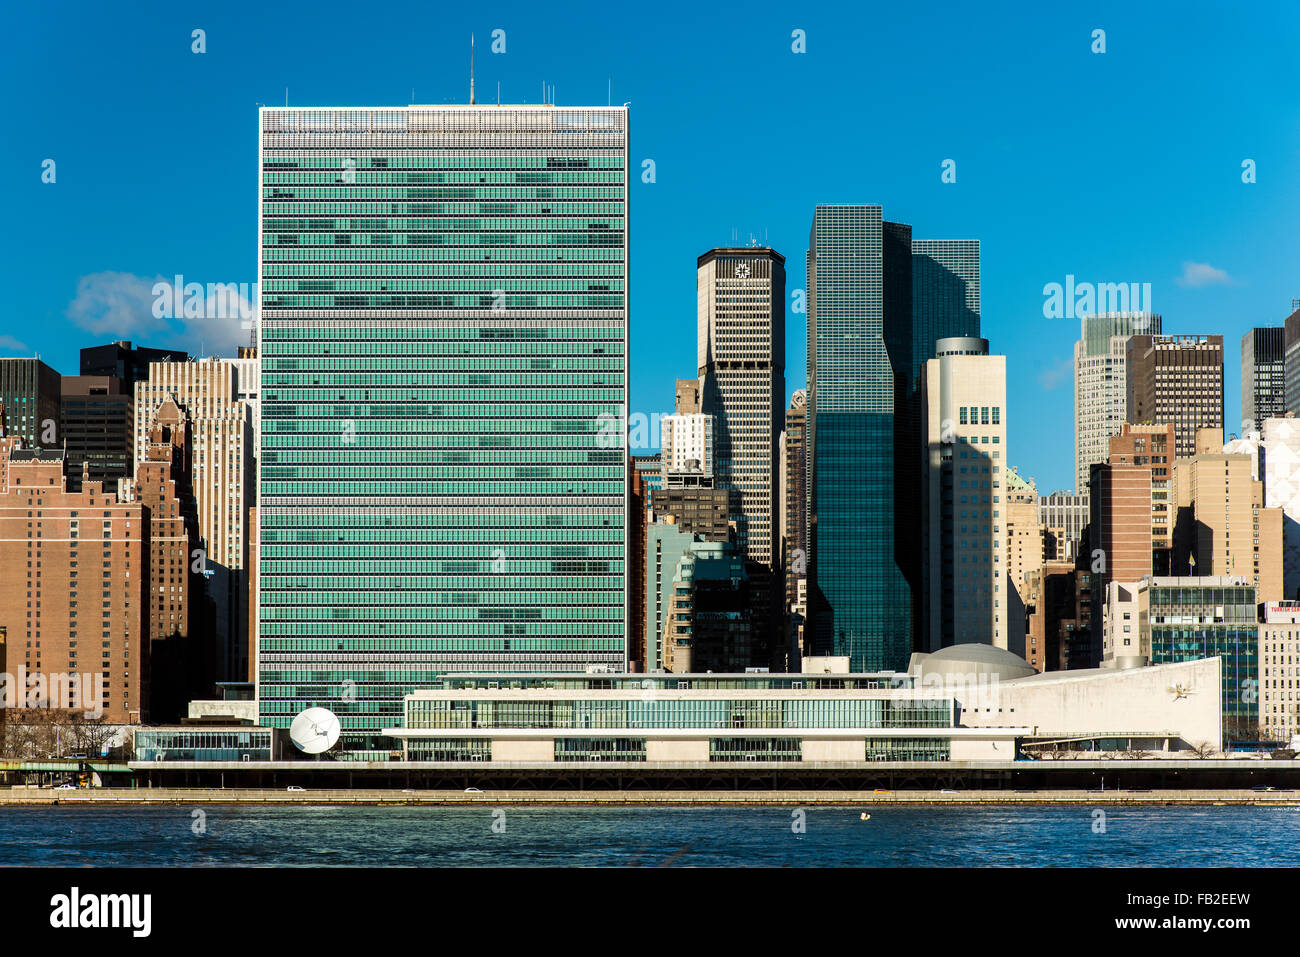 The Headquarters of the United Nations, Manhattan, New York, USA - Stock Image